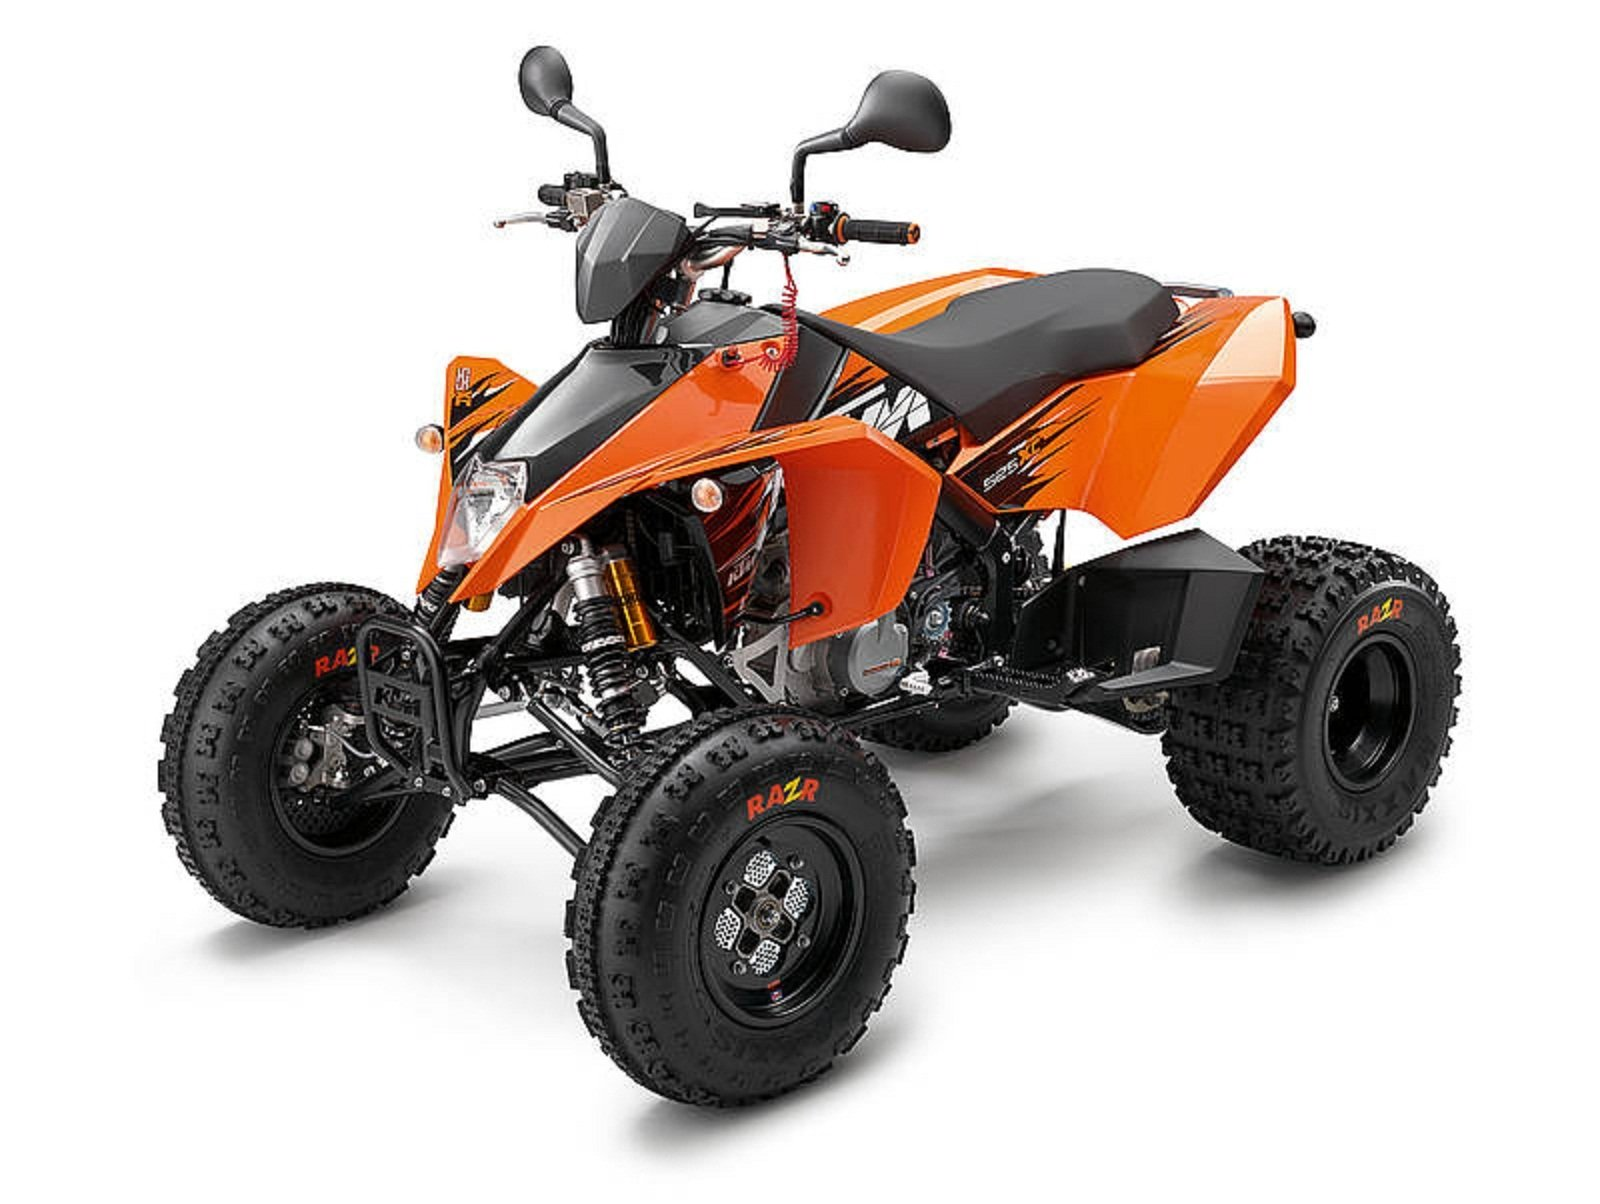 2012 ktm 525 xc review gallery top speed. Black Bedroom Furniture Sets. Home Design Ideas